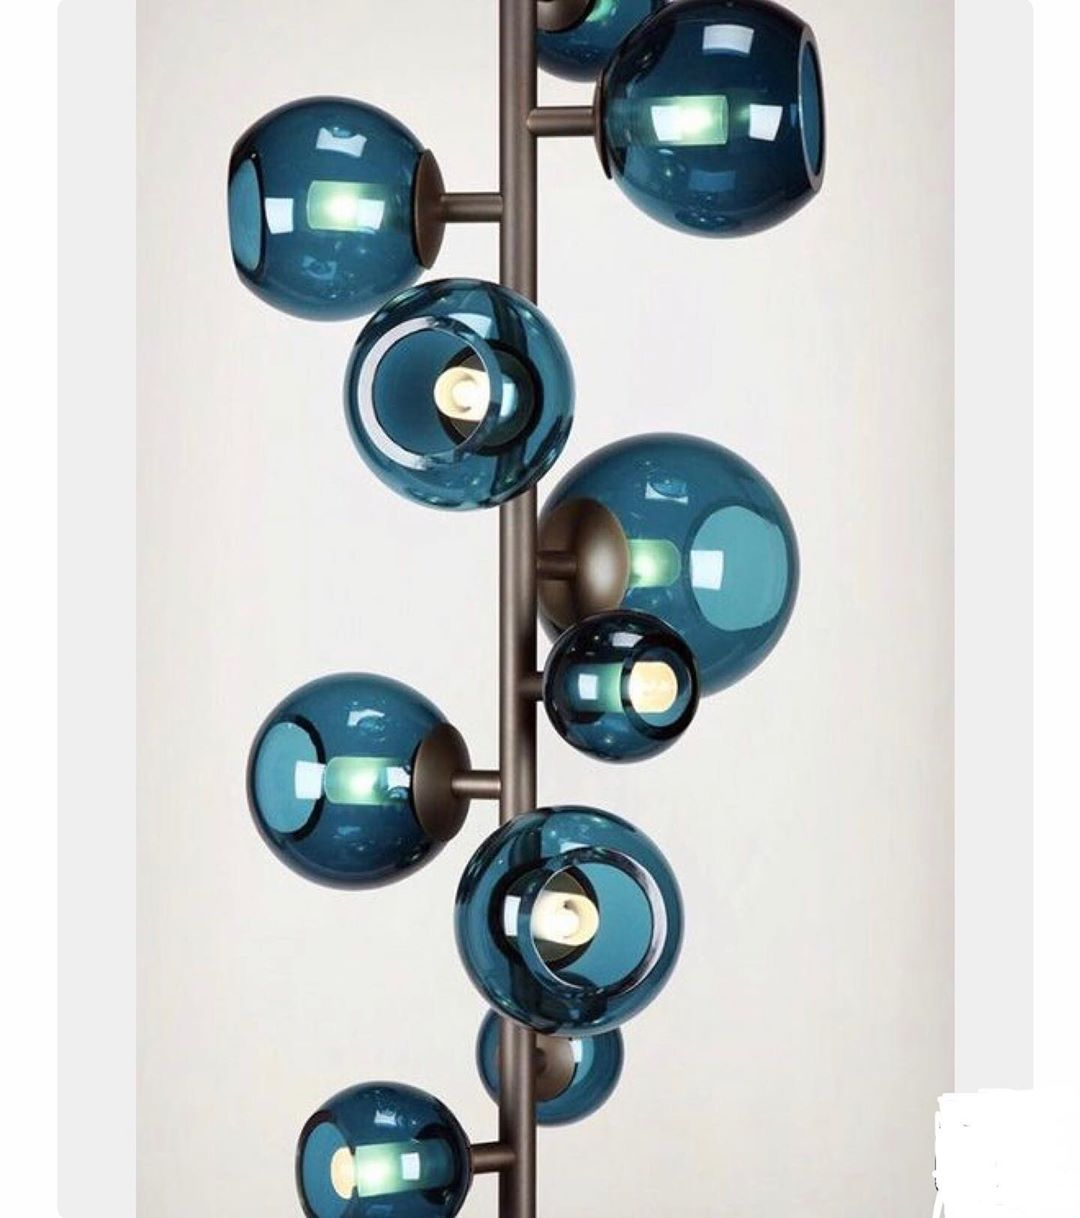 Inscapesdesign Gmail Com Inscapesdesign On Instagram Love This Totem Pole Design With Turquoise Glass G Pole Lamps Modern Floor Lamps Unique Floor Lamps